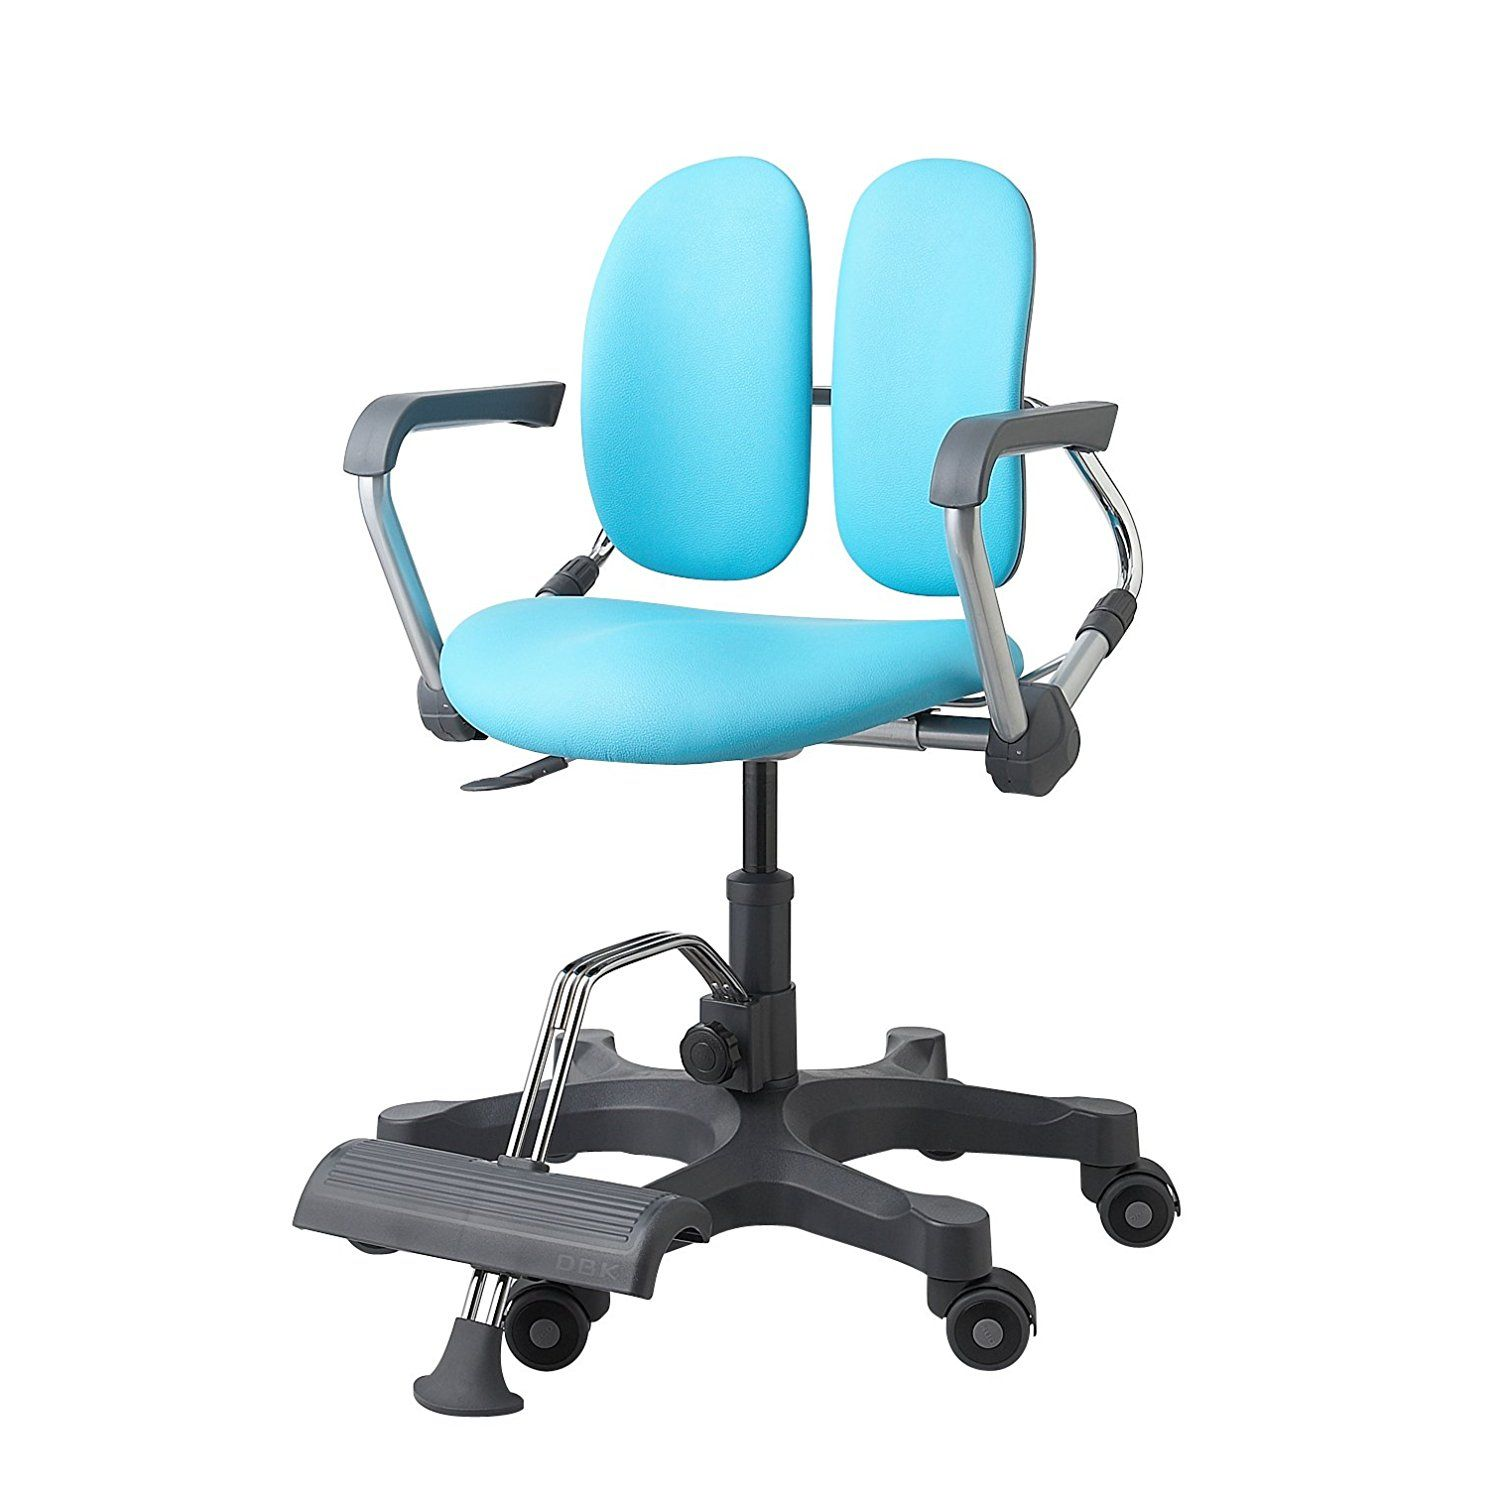 Desk Chairs For Children duorest kids, ergonomic student desk chair | the assistive | dorm